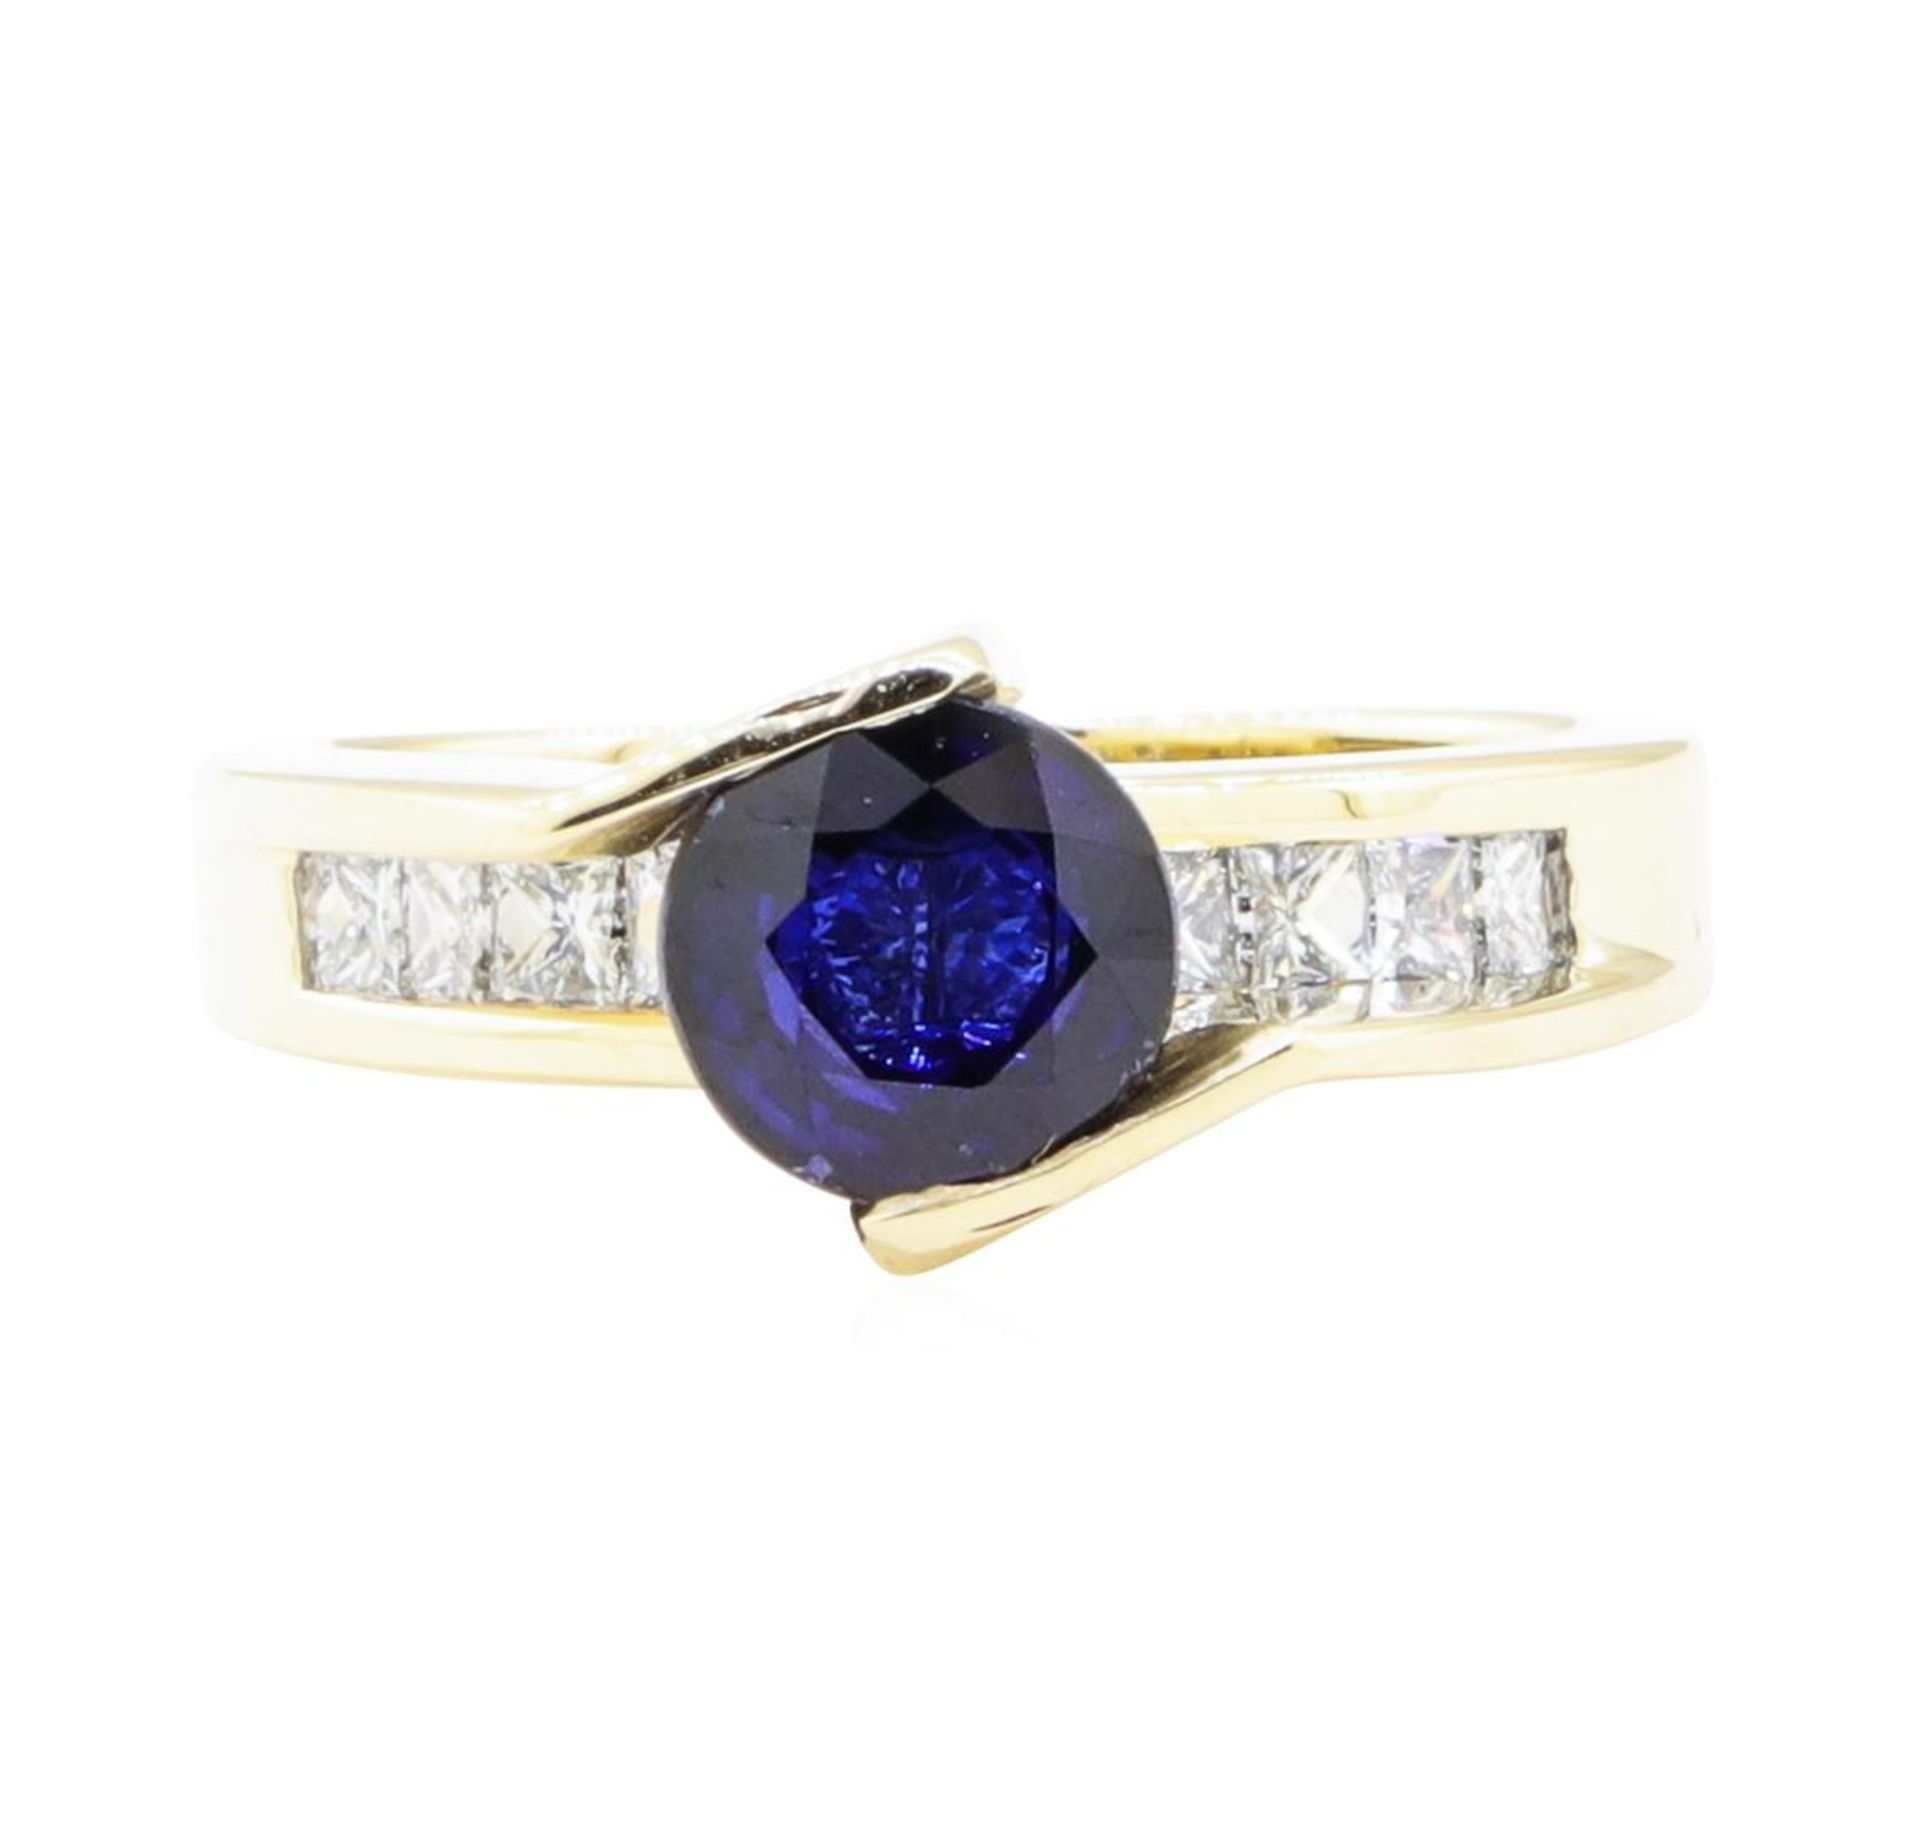 2.14 ctw Sapphire And Diamond Ring - 14KT Yellow Gold - Image 2 of 5